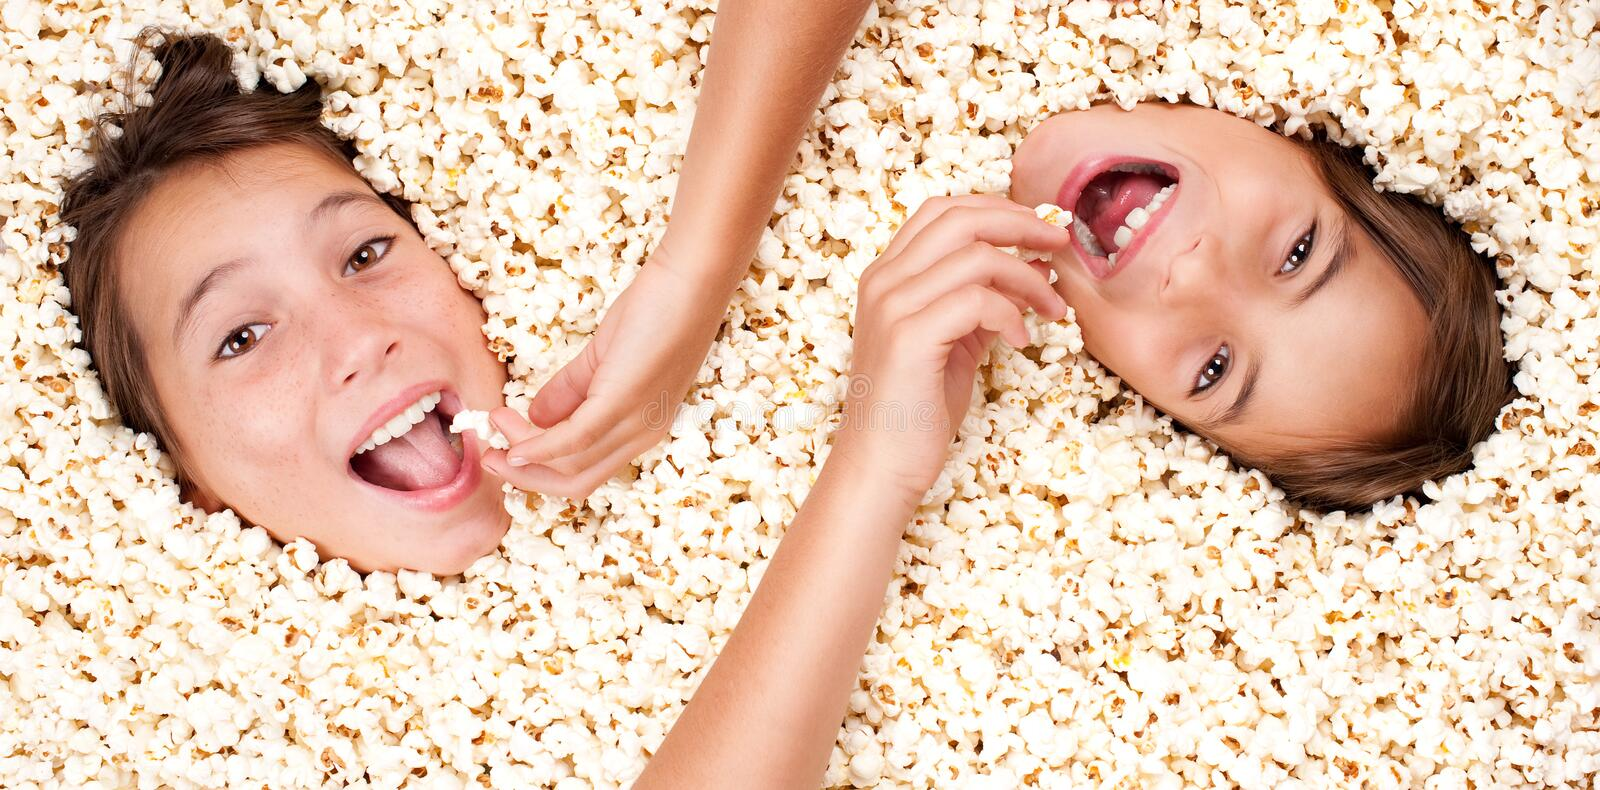 Download Buried In Popcorn Royalty Free Stock Photos - Image: 26576608